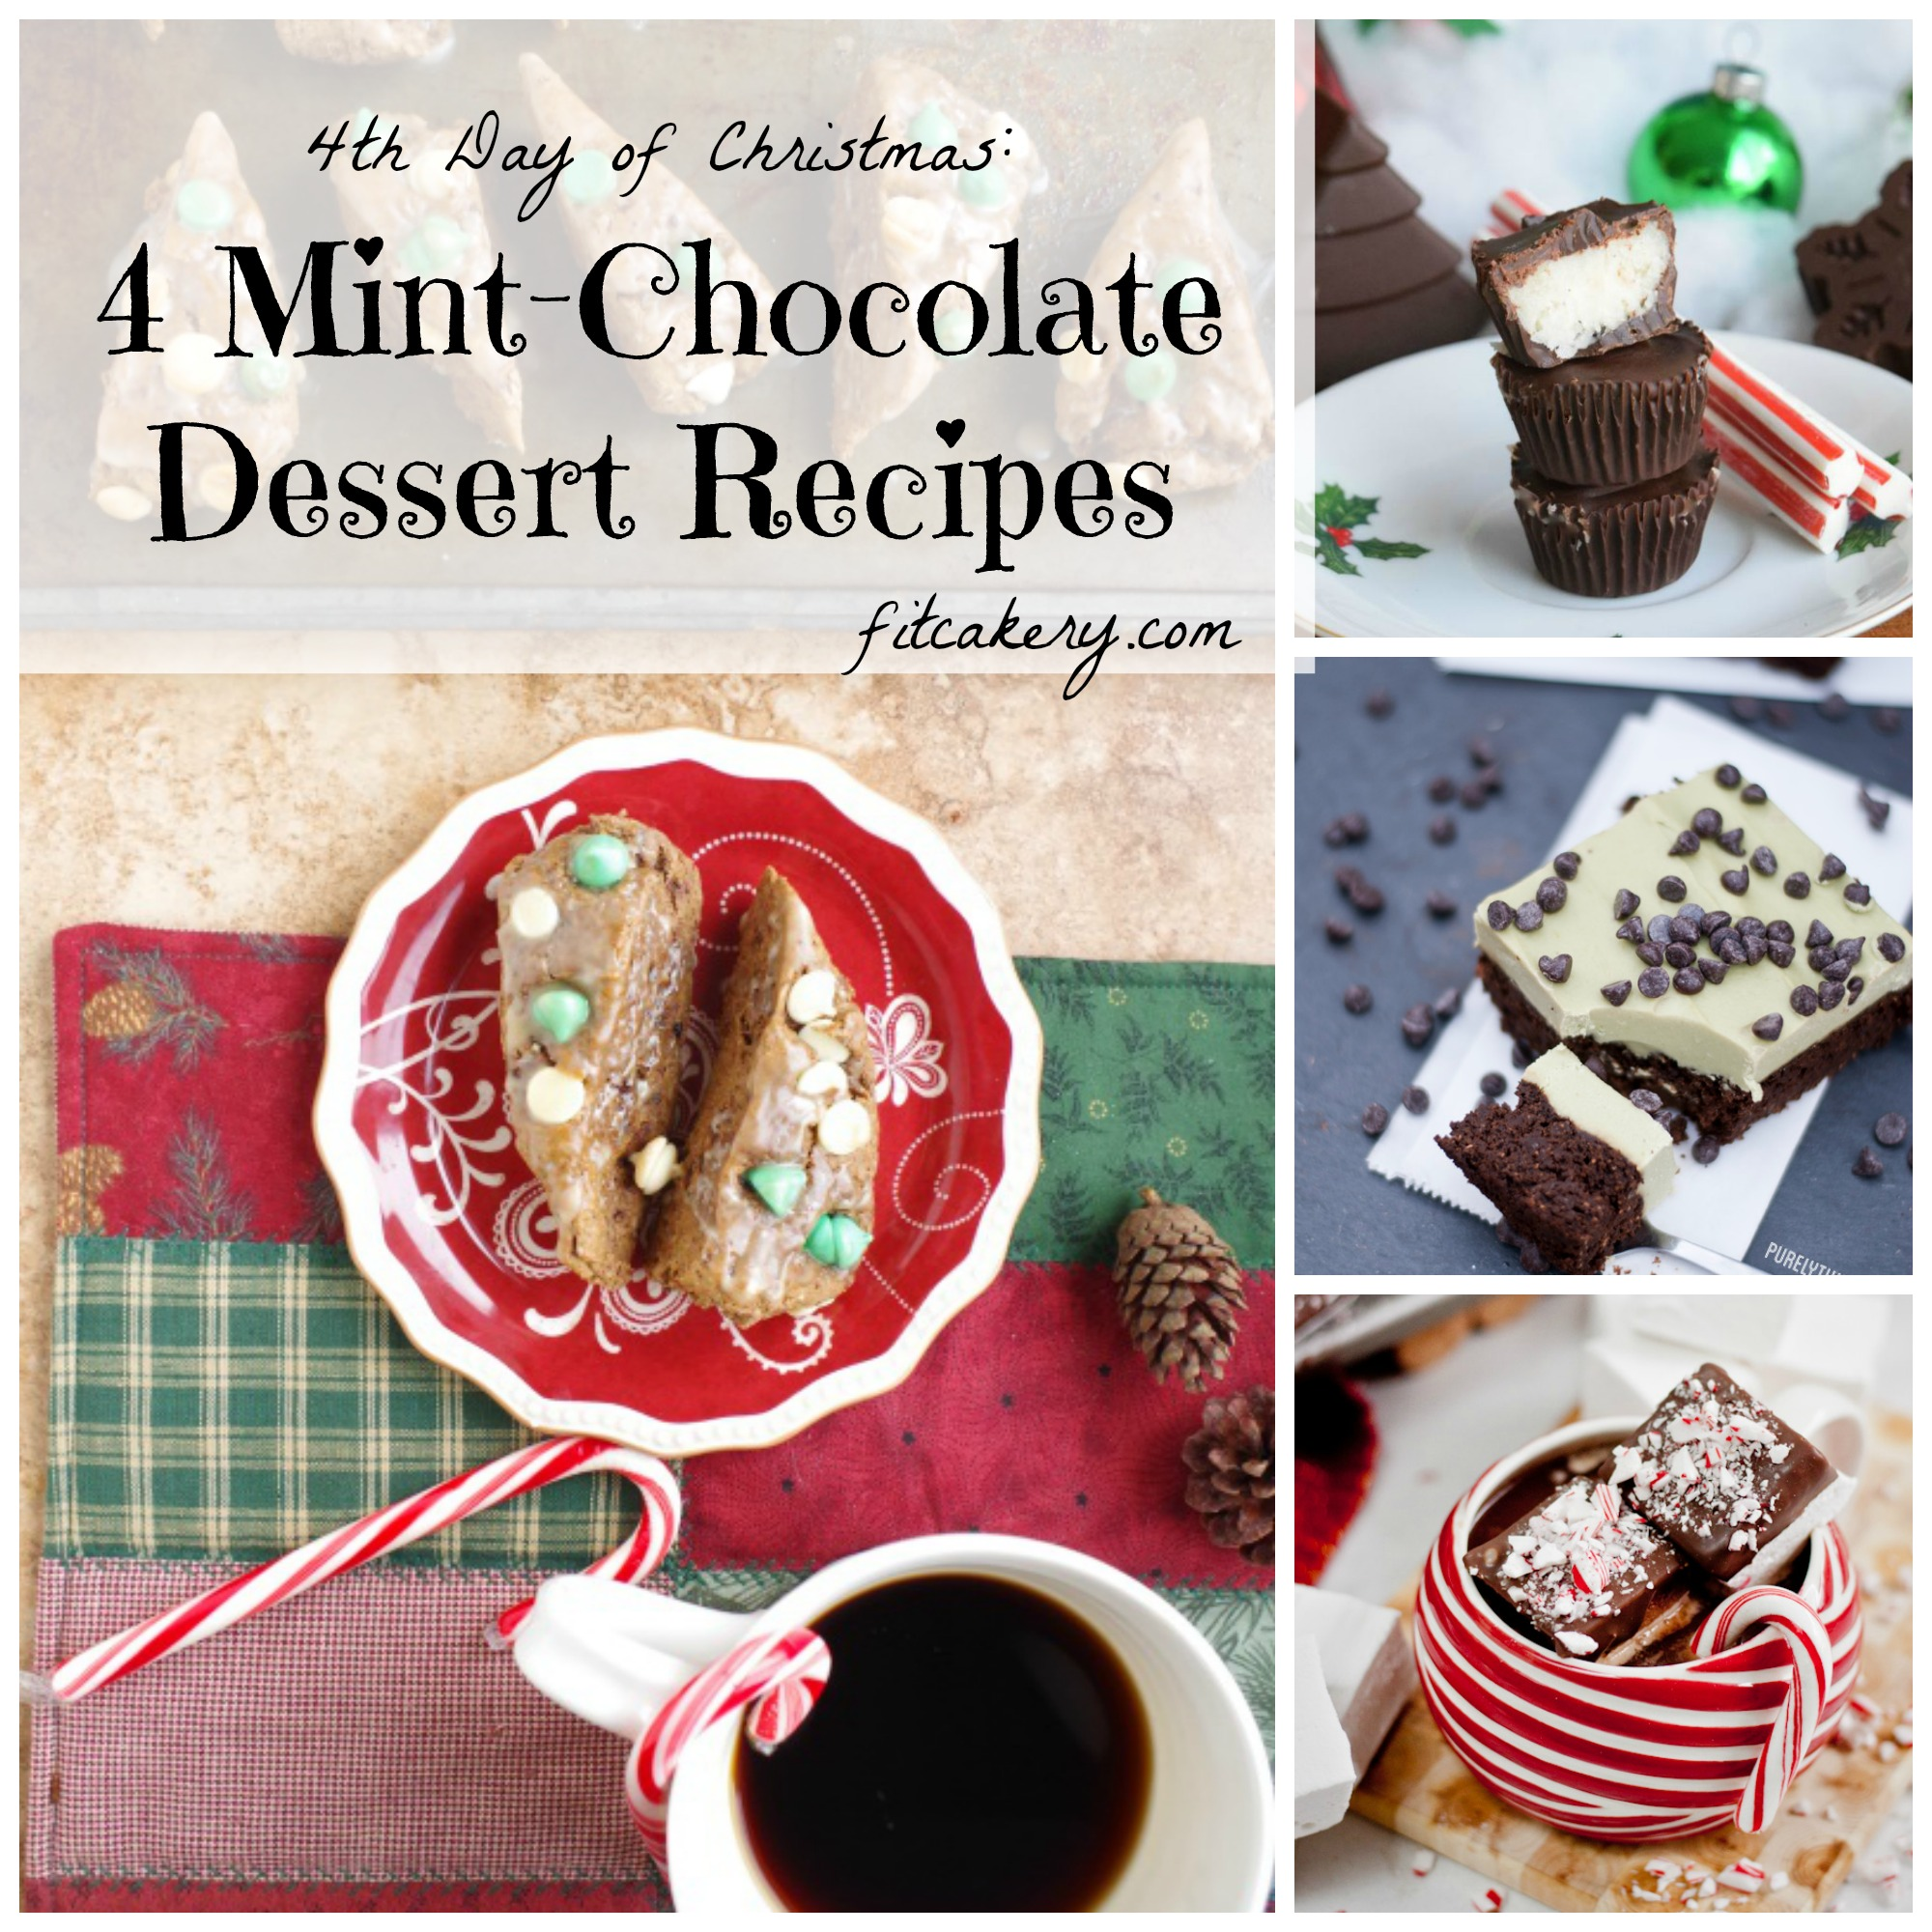 4 secretly healthy homemade mint-chocolate desserts to share this holiday! #dessertrecipes